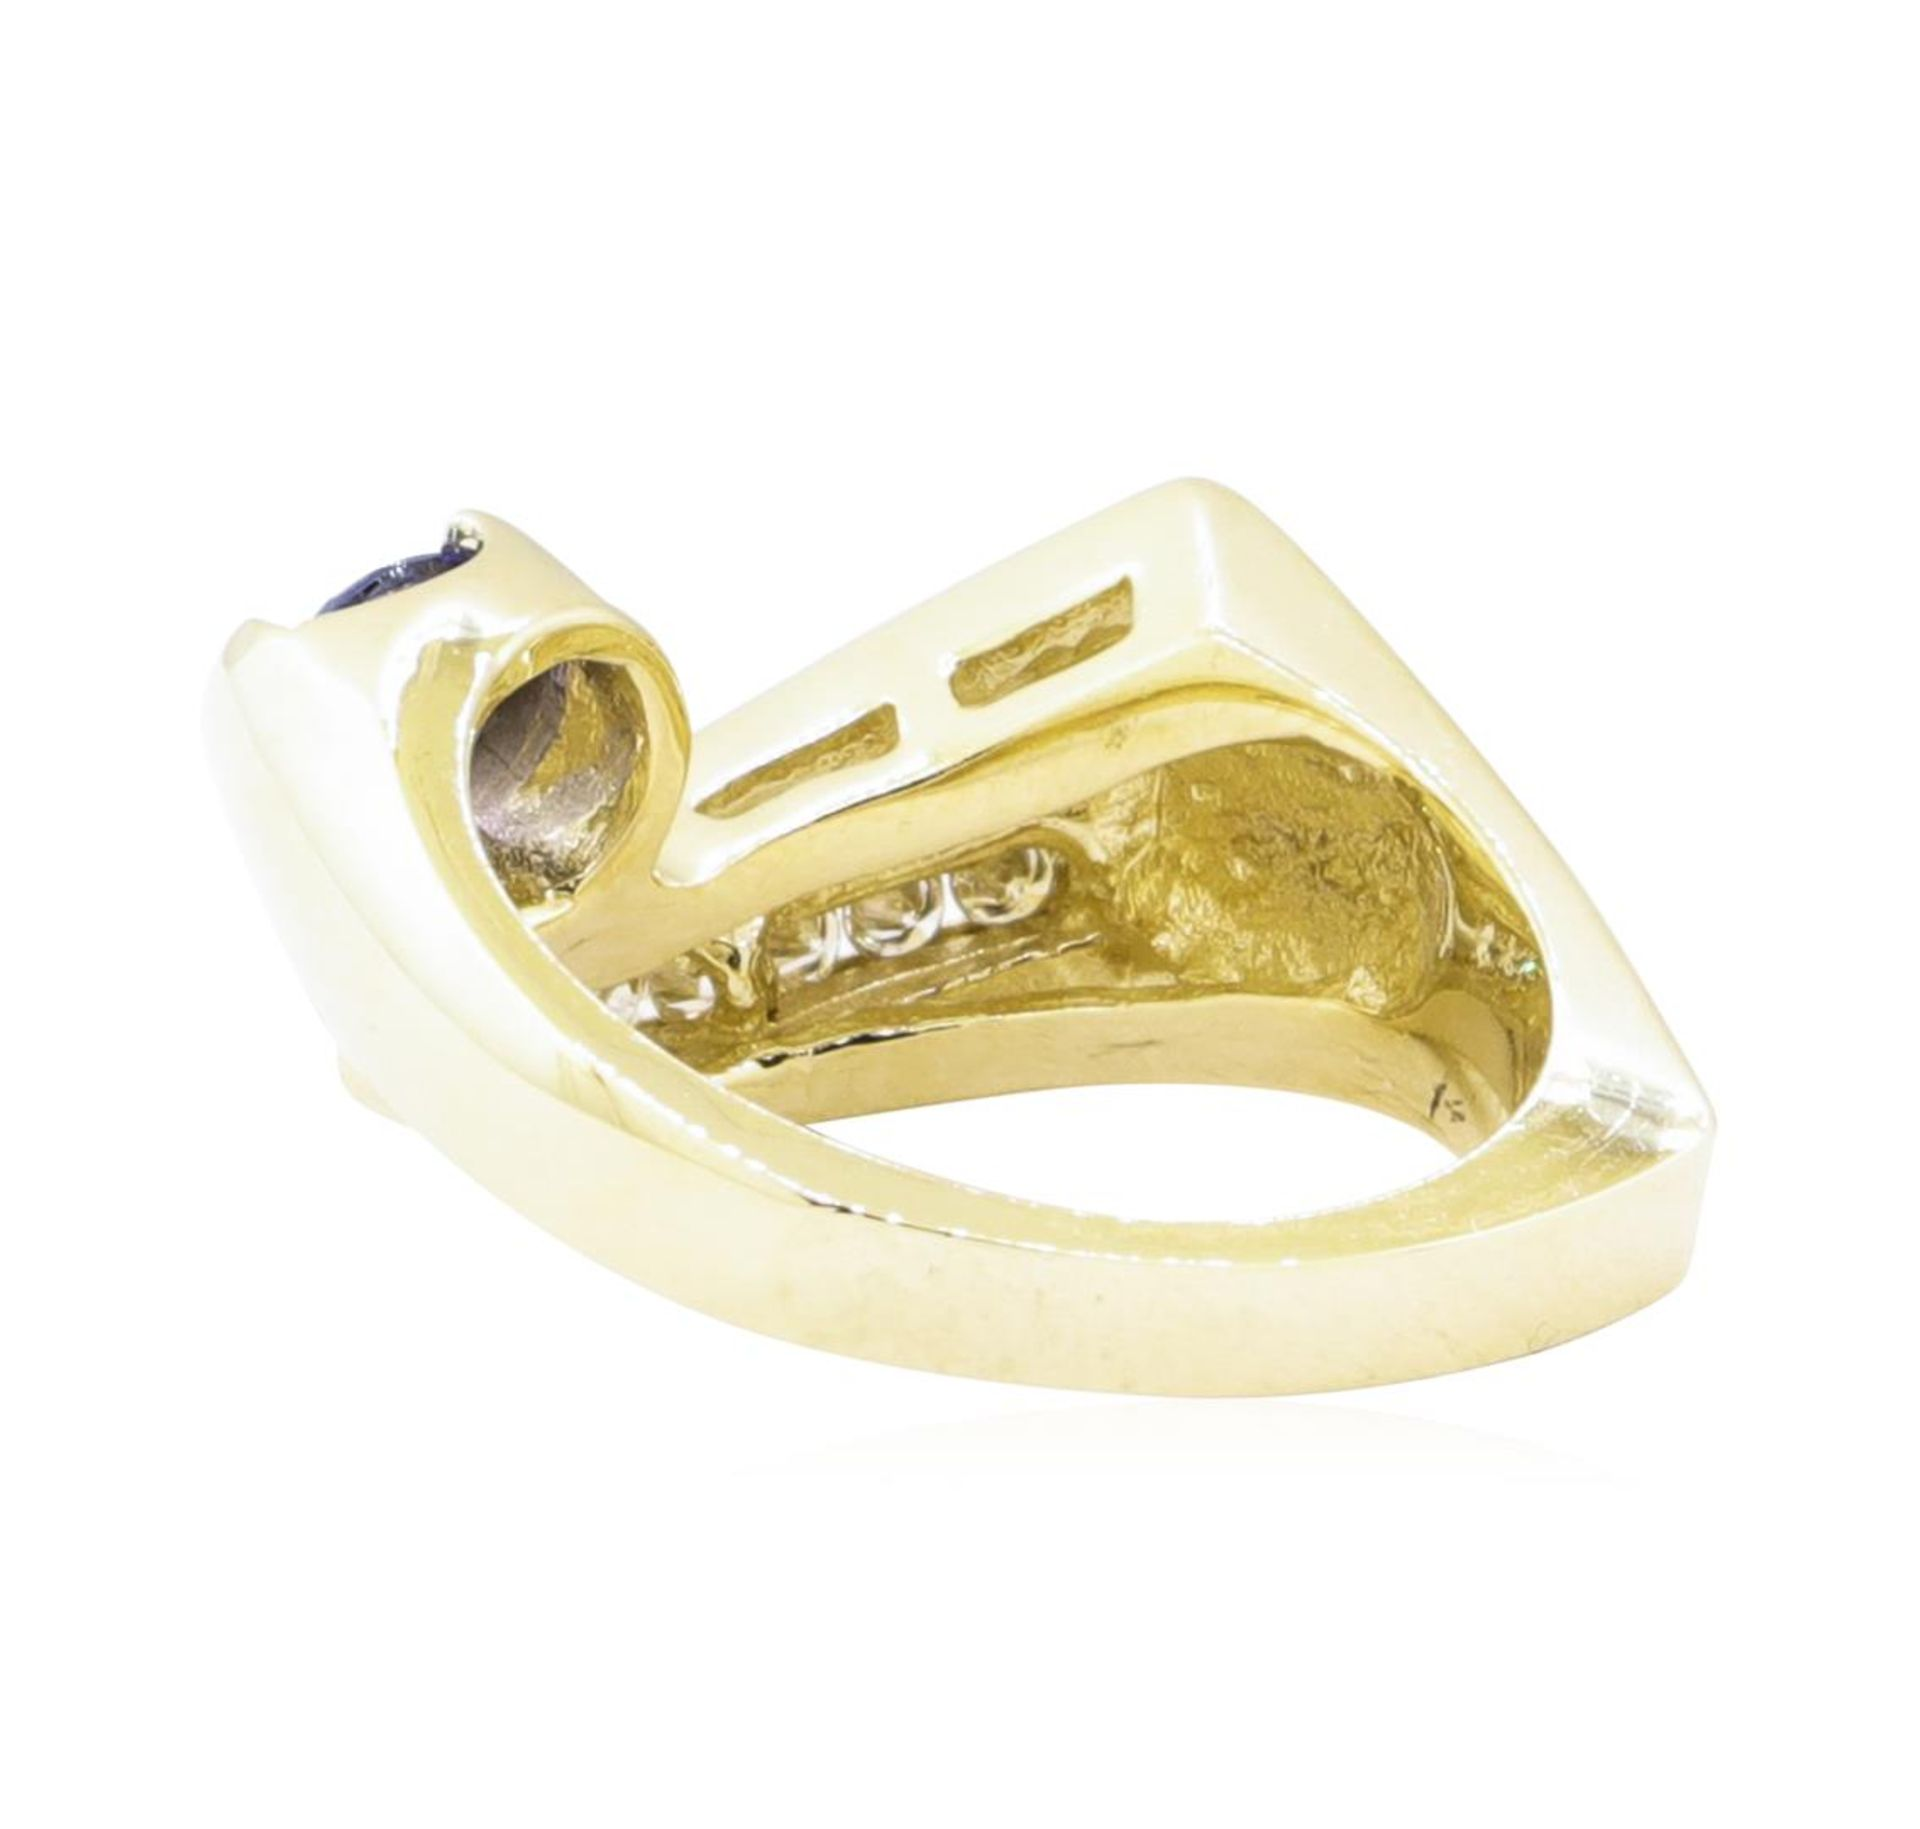 0.55ctw Blue Sapphire and Diamond Ring - 14KT Yellow Gold - Image 3 of 4